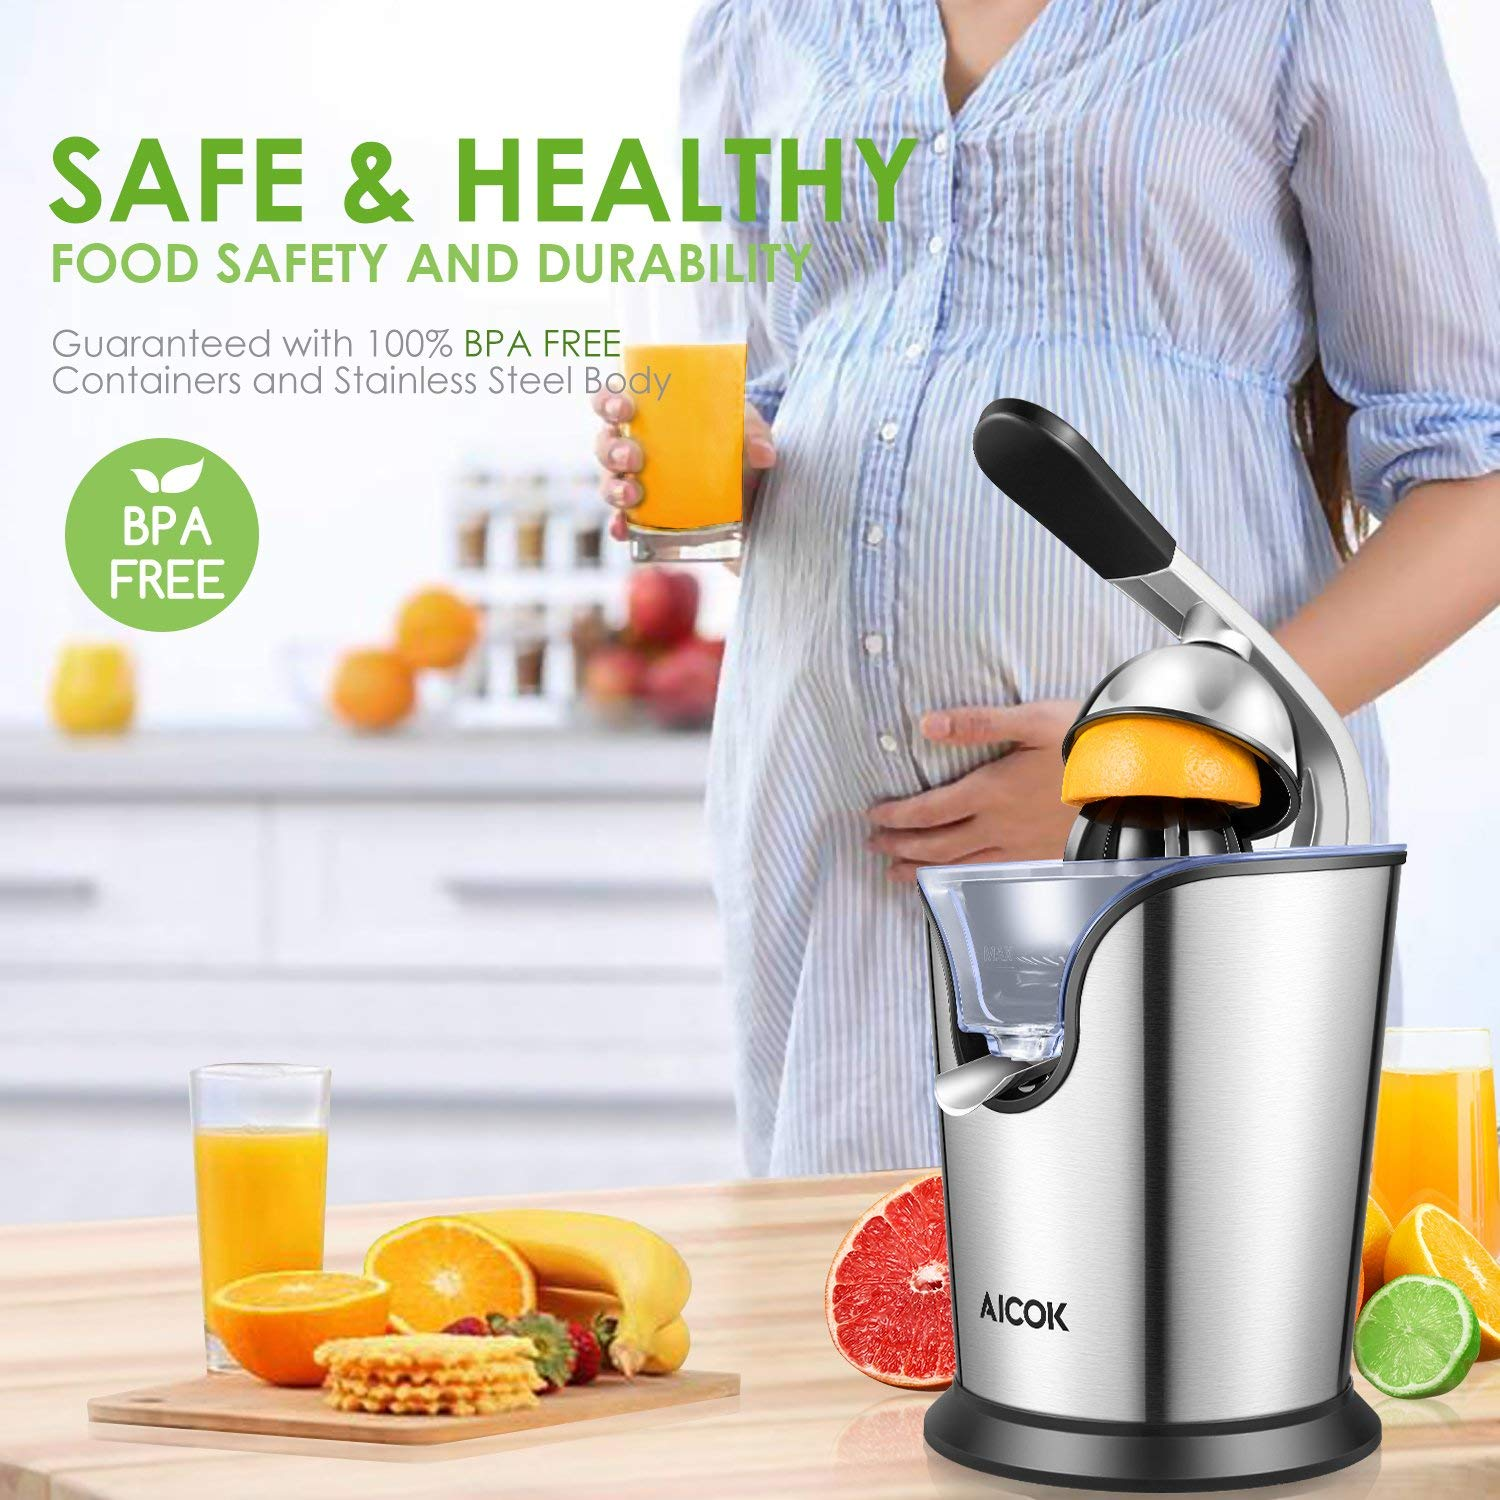 Aicok Orange Juicer Electric Citrus Juicer with Humanized Handle